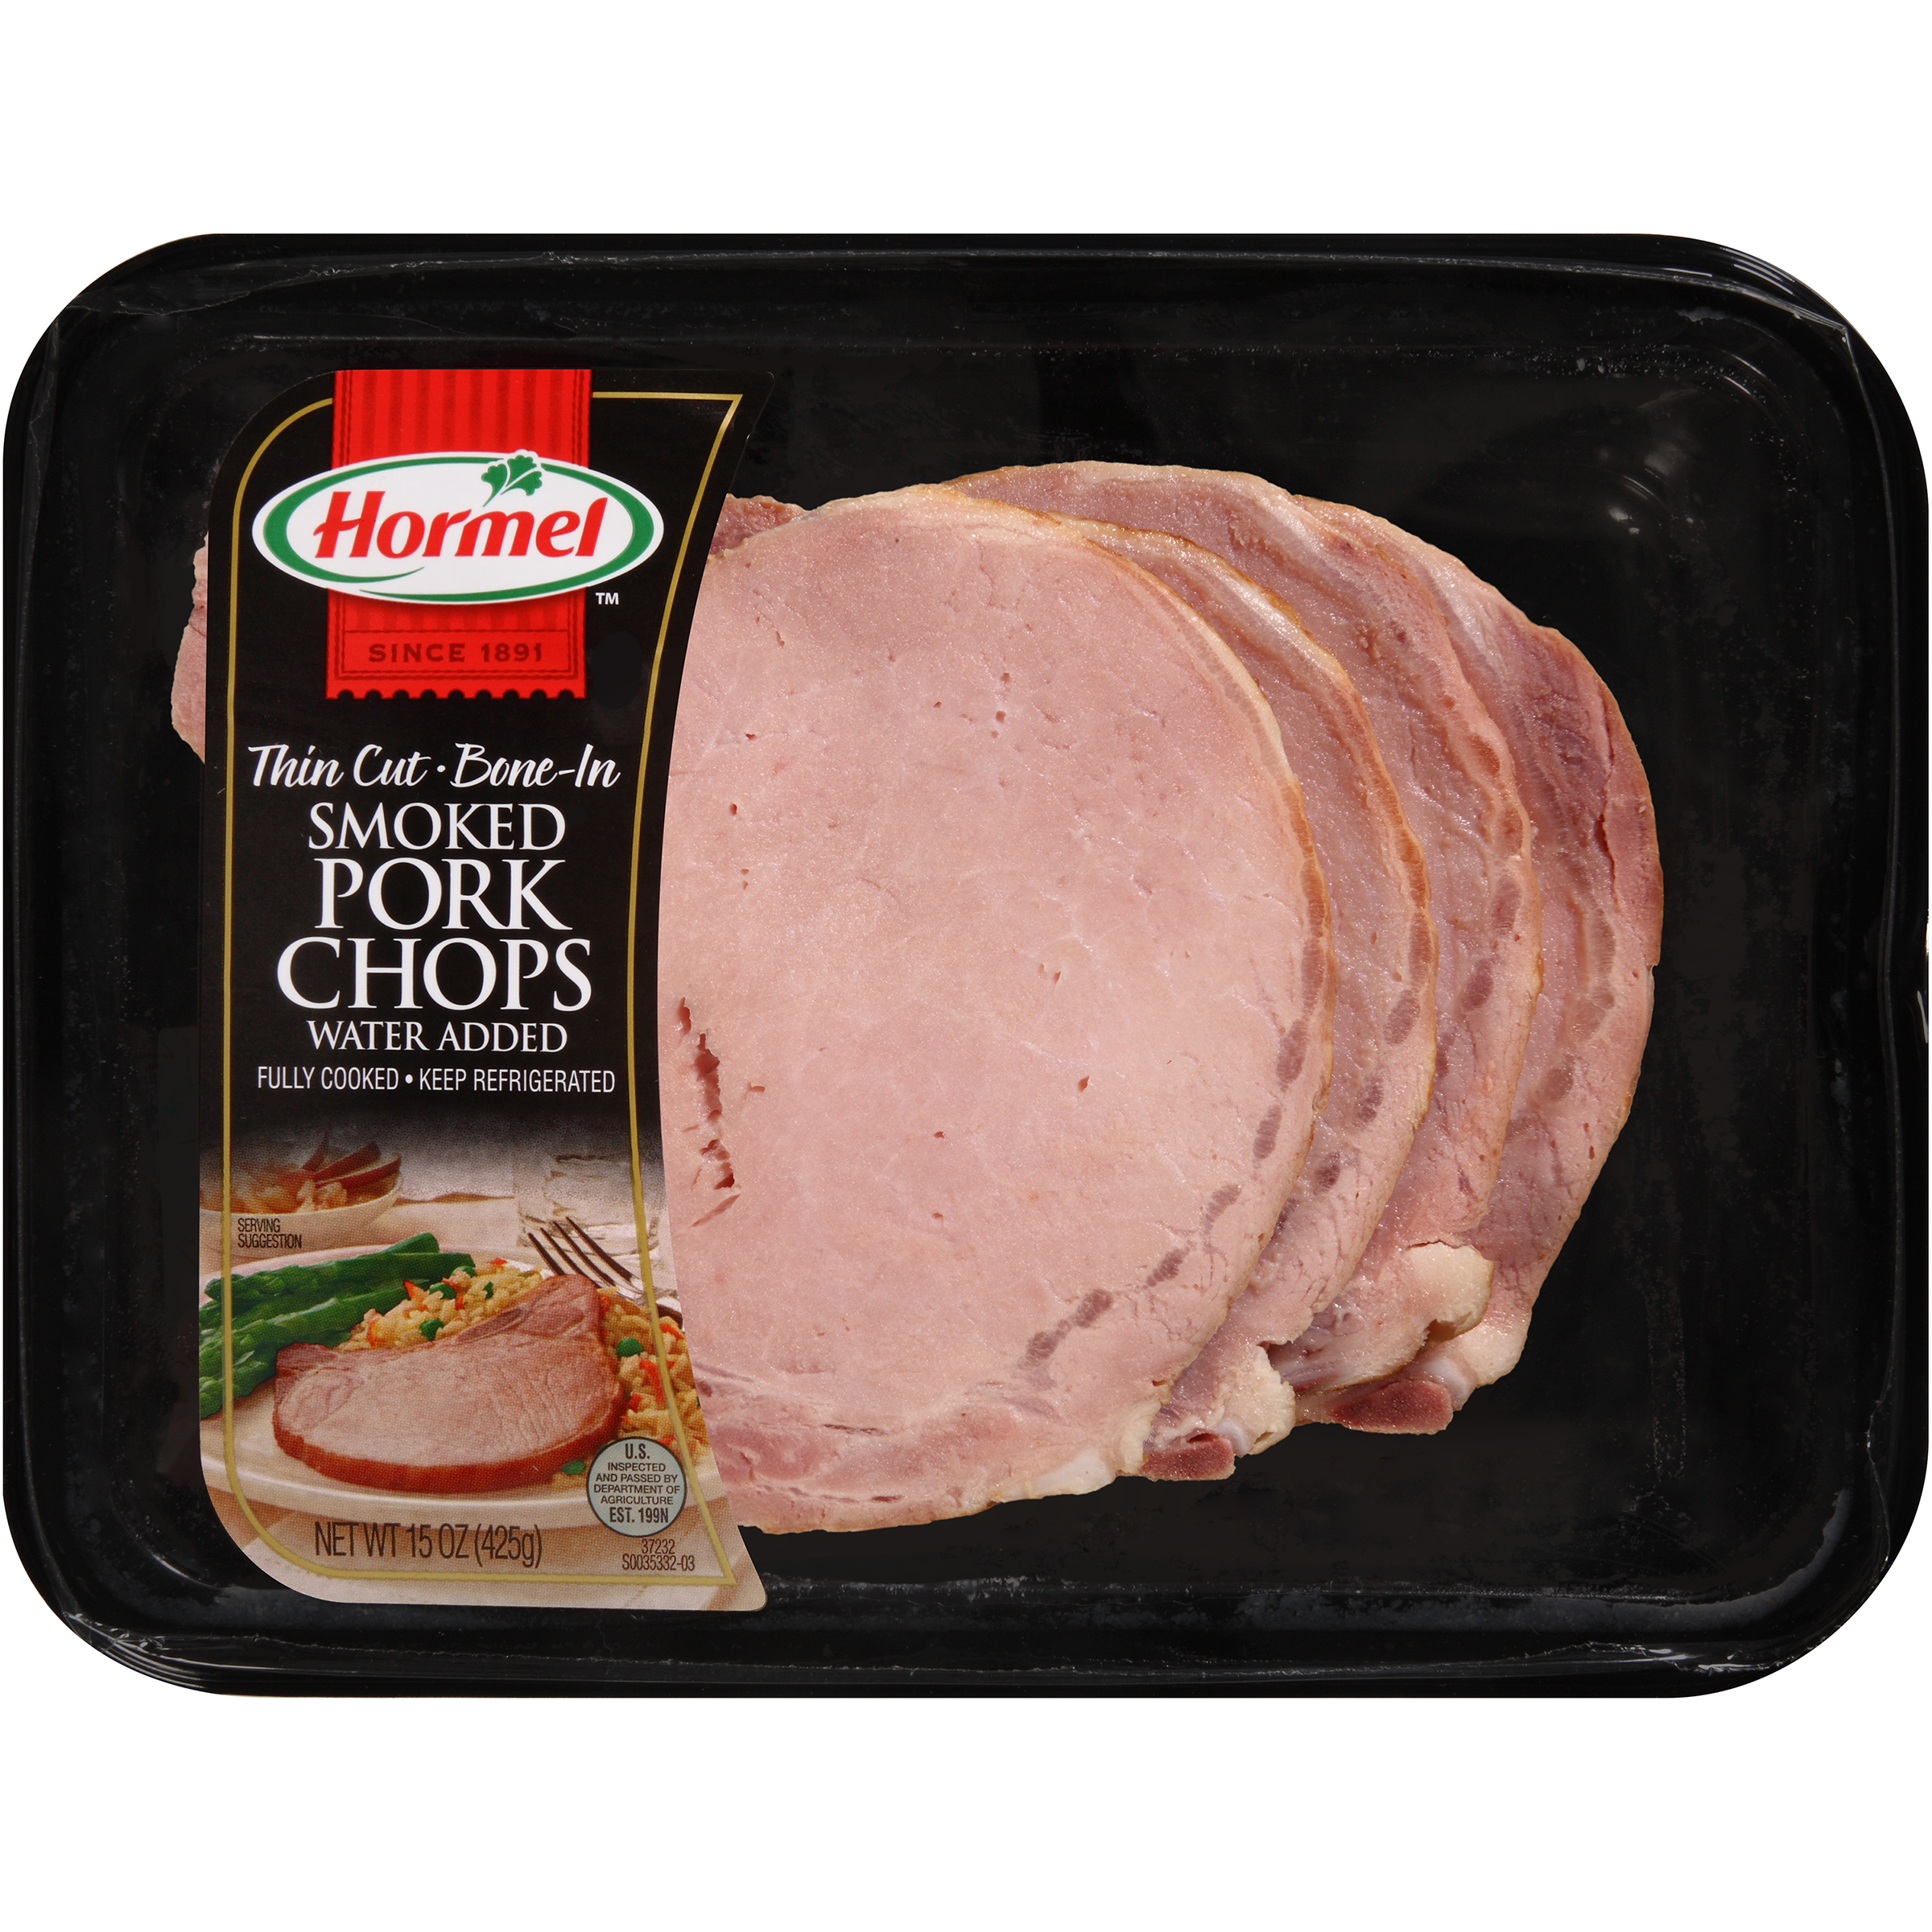 Hormel™ Thin Cut Bone-In Smoked Pork Chops 15 oz. Tray